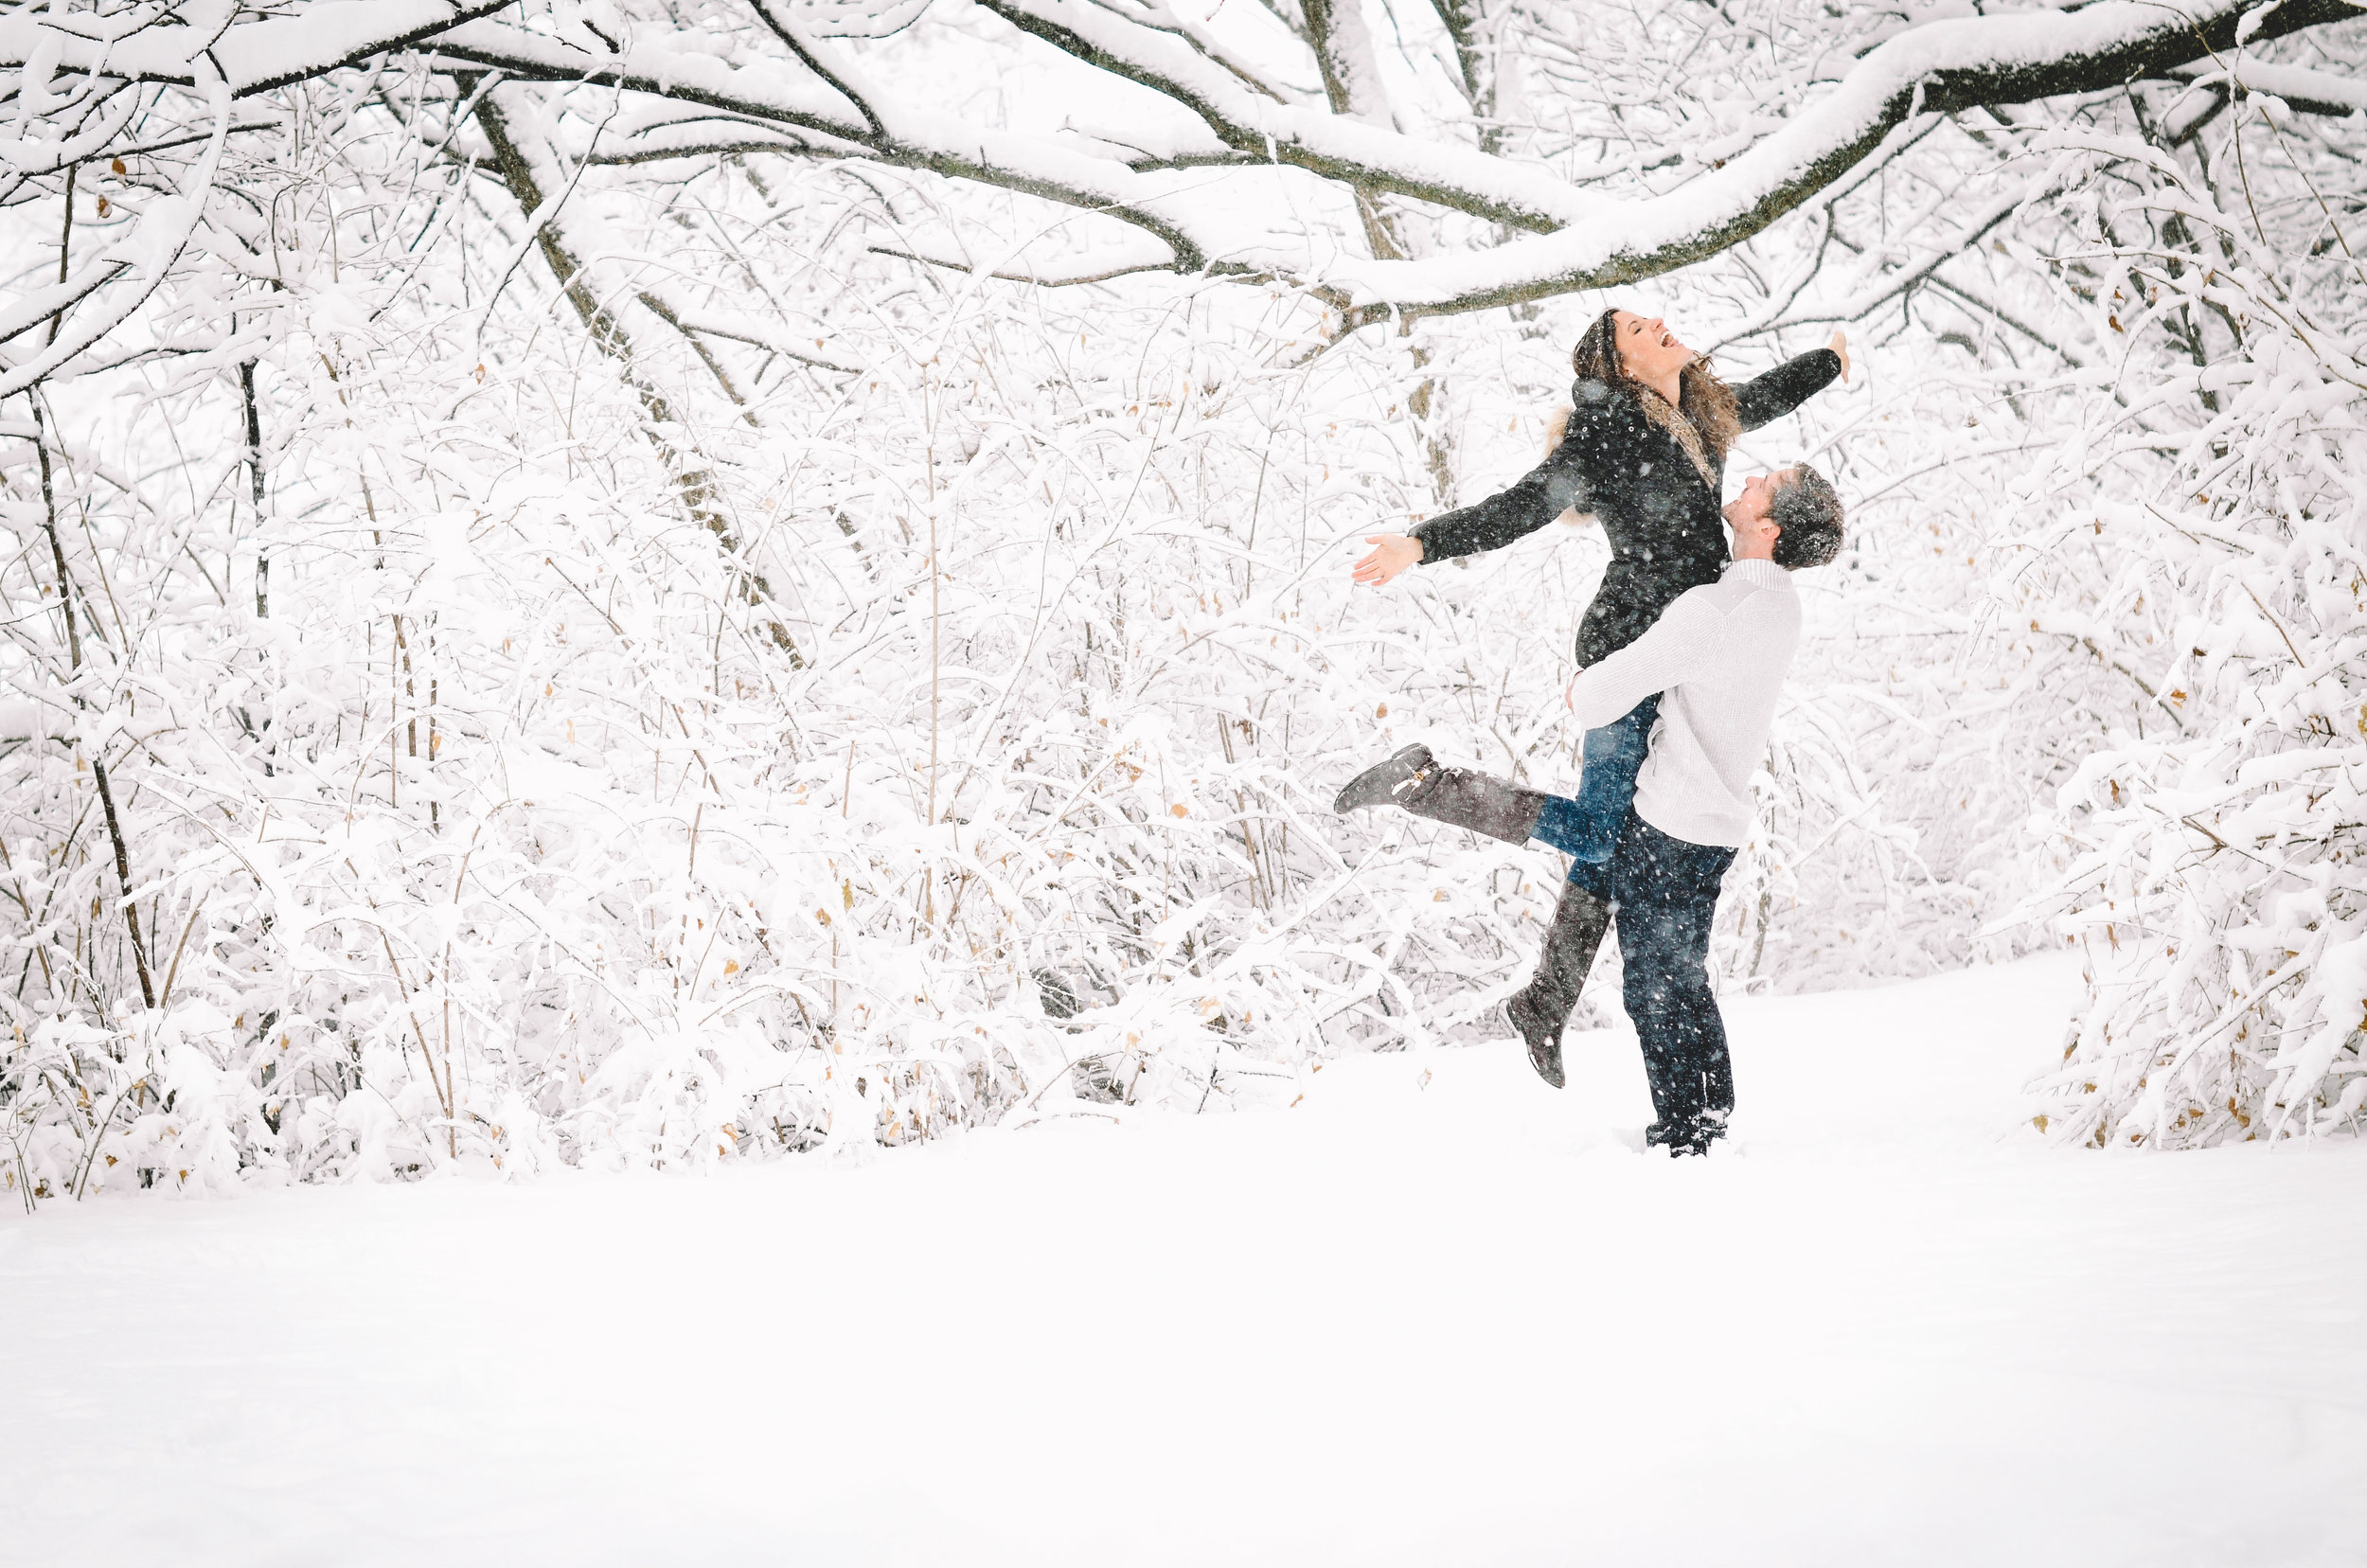 Nathan + Rebekah's Wintry Snowfall Engagement